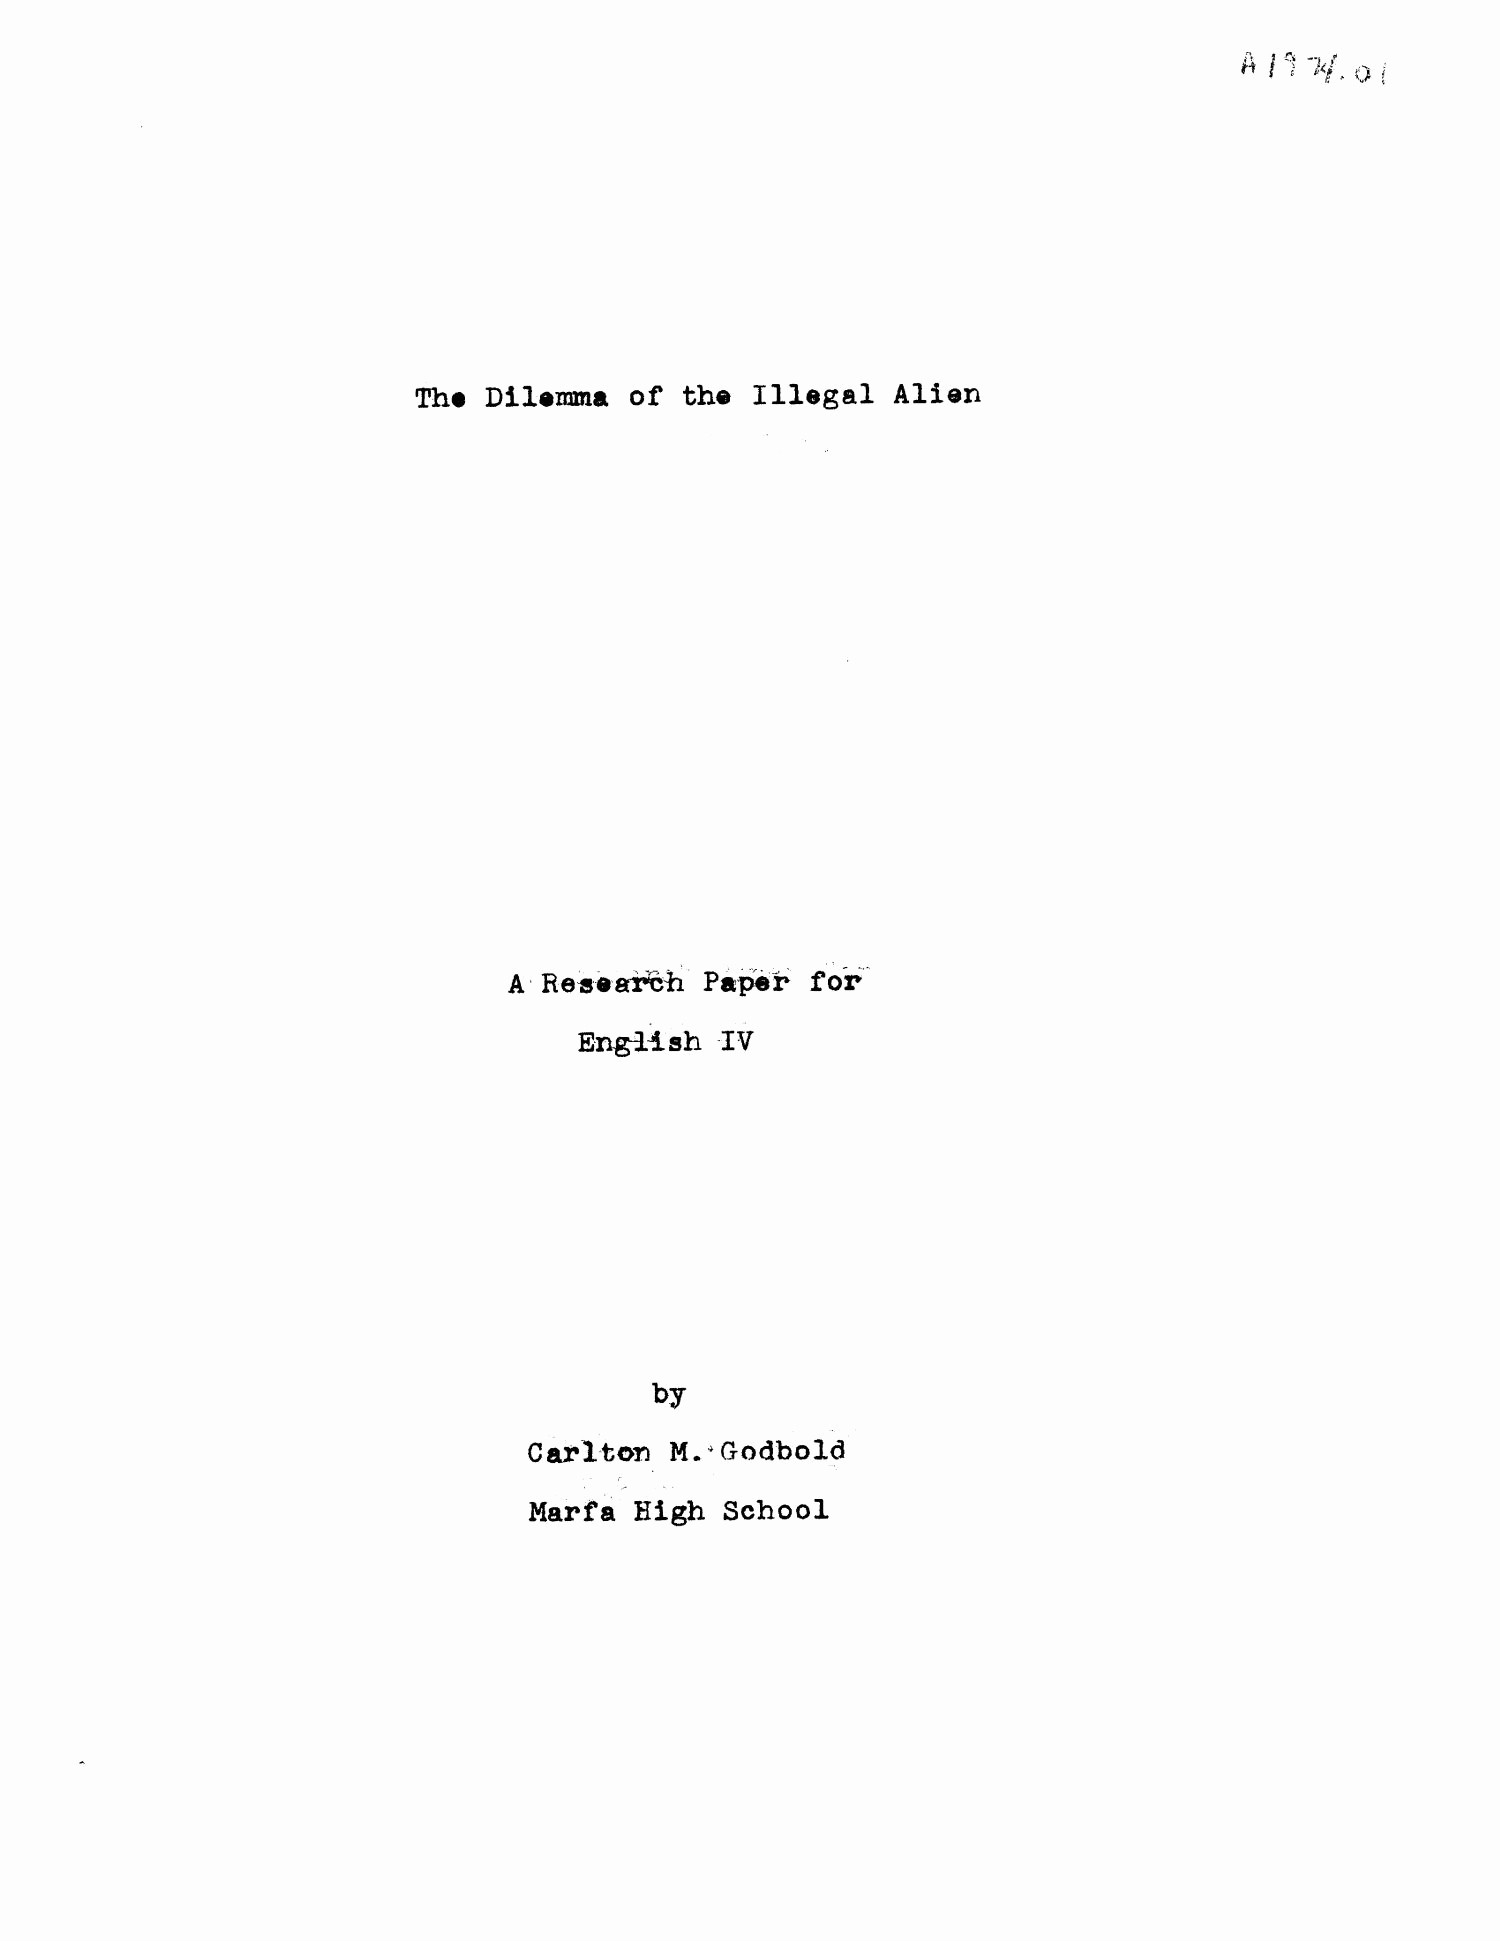 Research Paper Title Page Template Beautiful the Dilemma Of the Illegal Alien A Research Paper for